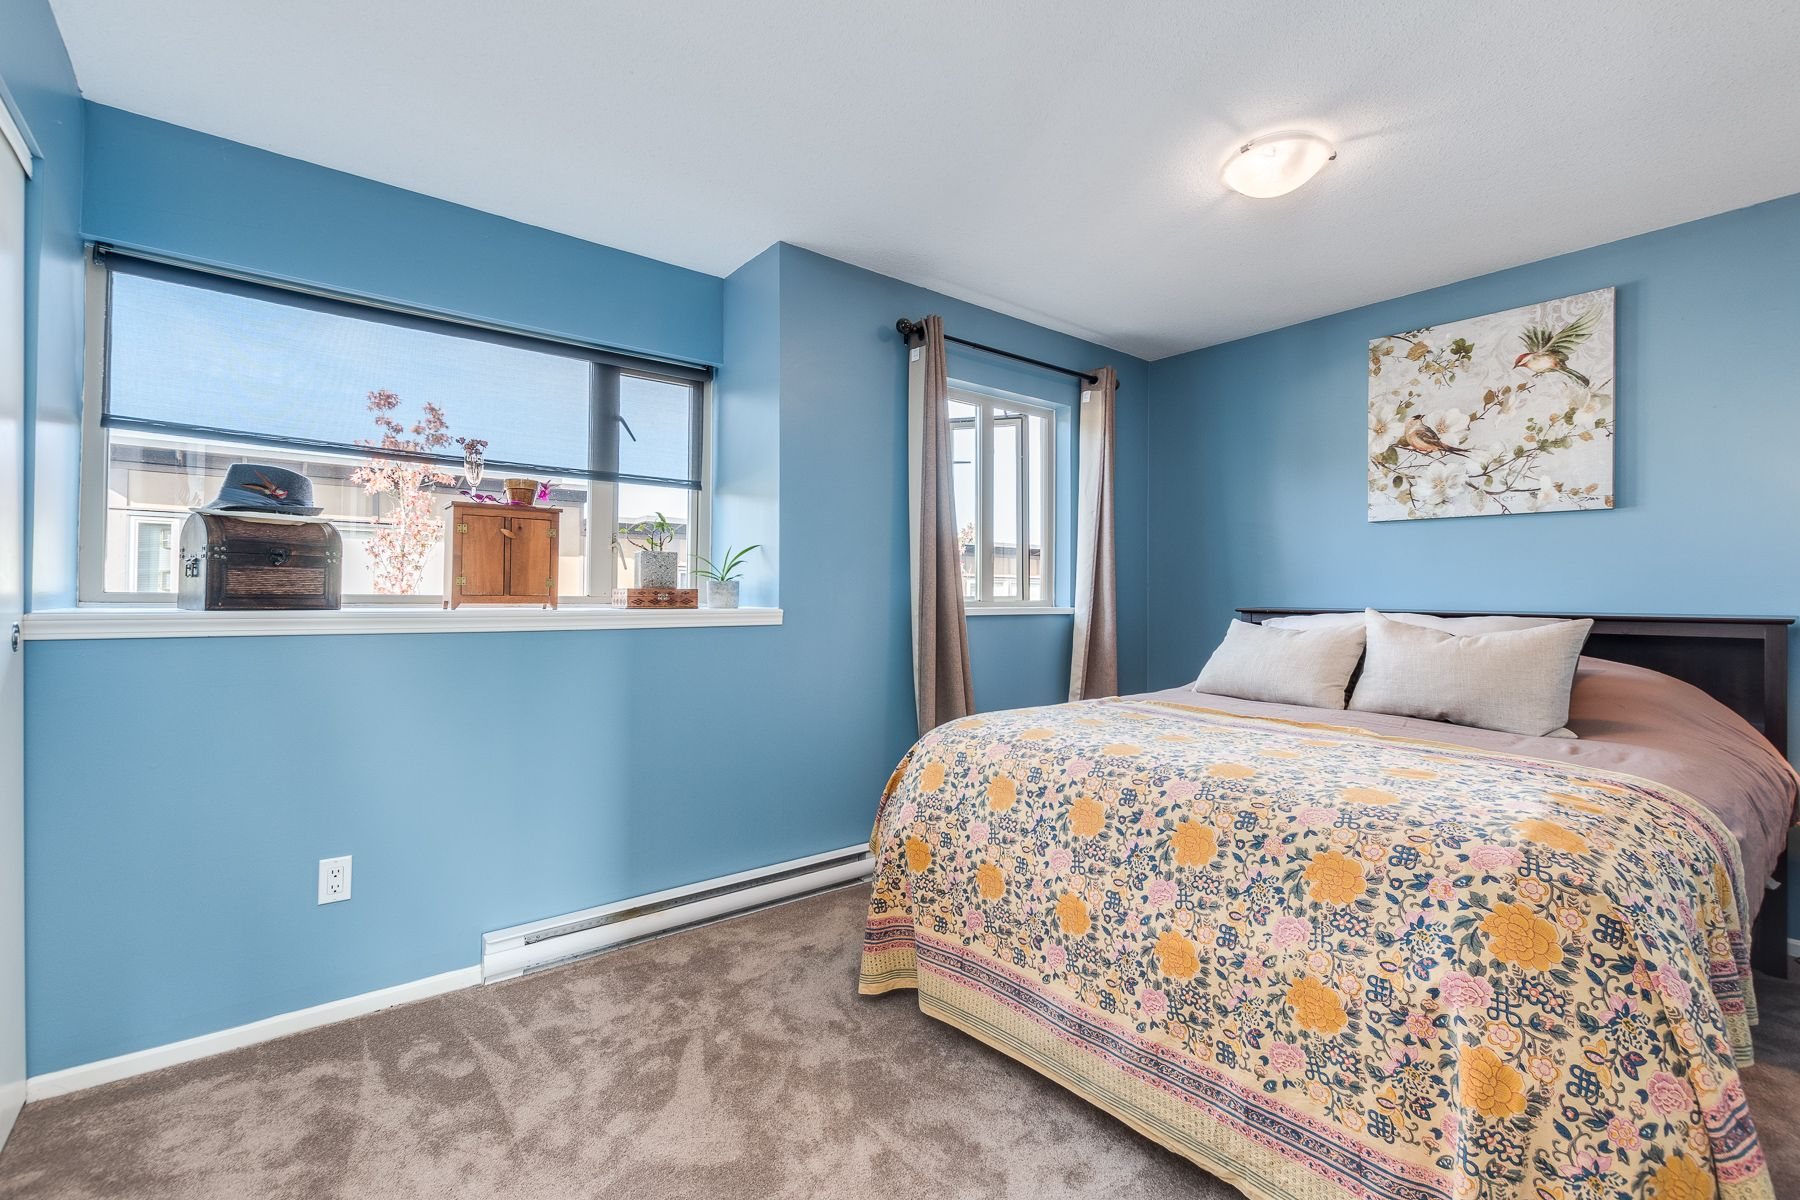 Photo 23: Photos: 7-2389 Charles St in Vancouver: Grandview Woodland Townhouse for sale (Vancouver East)